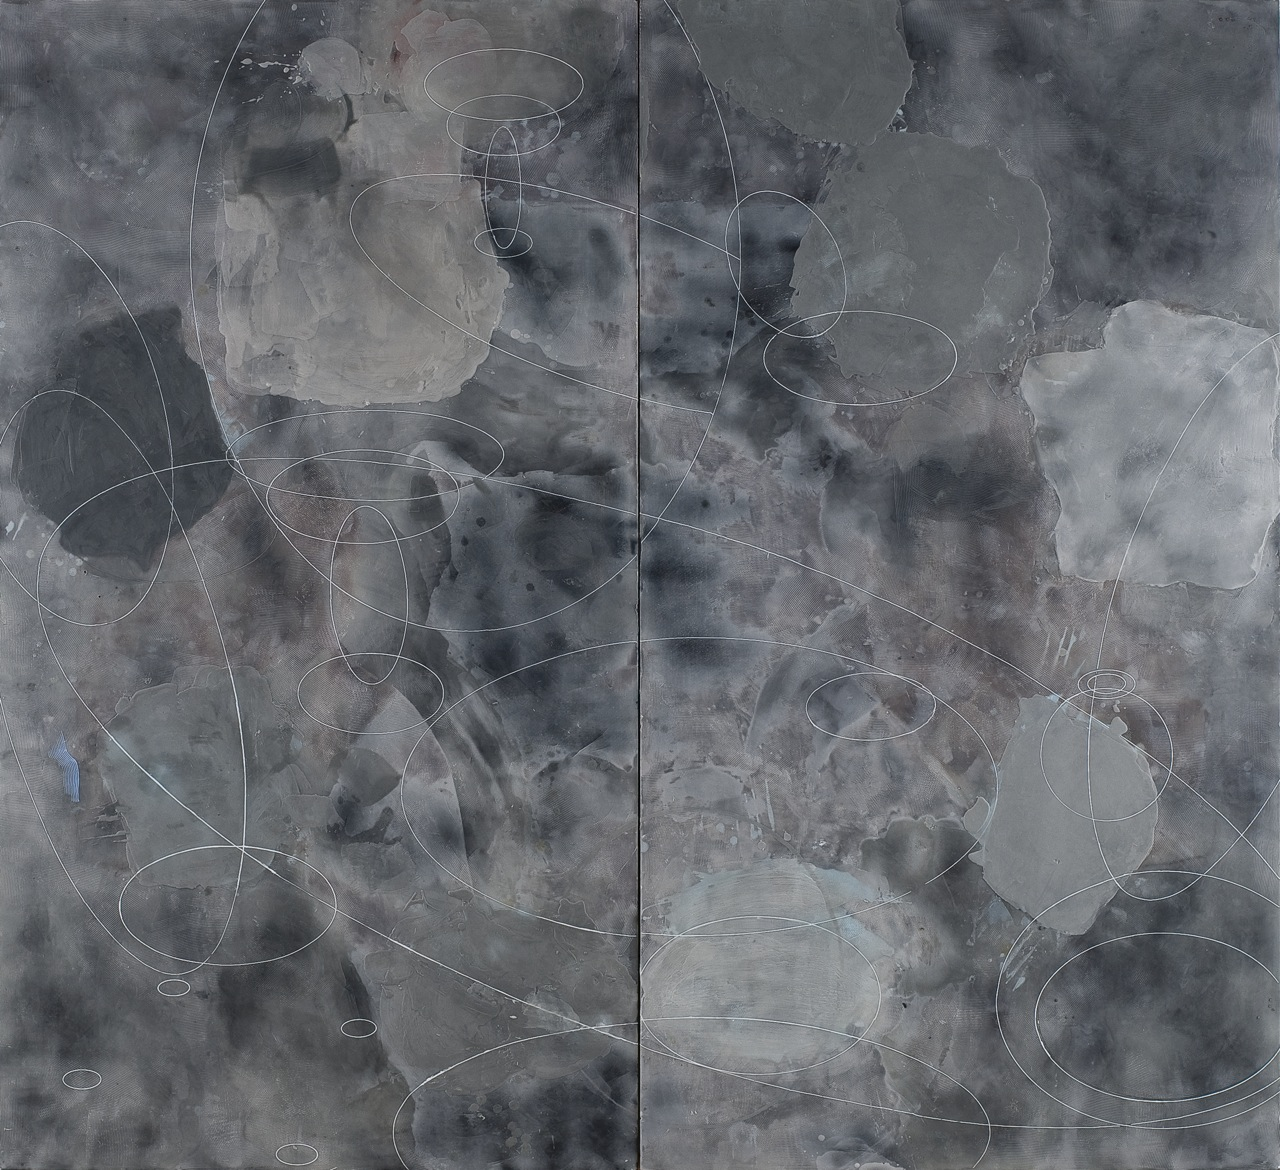 Peter Flaccus, Diptych with Ellipses, 2012, encausto su tavola, cm 183x200